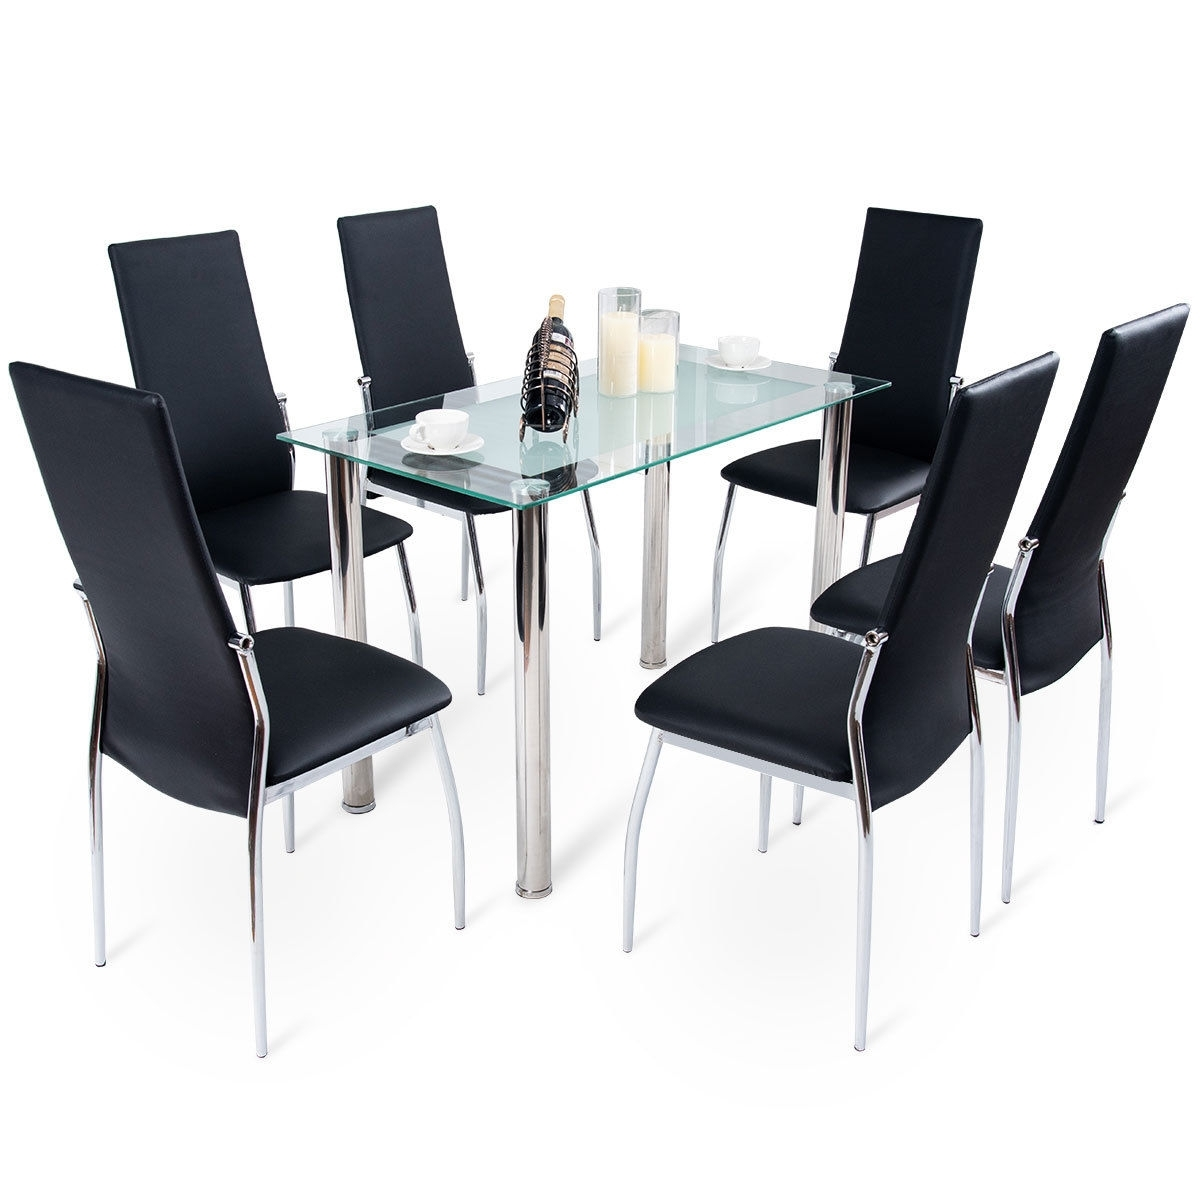 Black Glass Dining Tables With 6 Chairs Regarding Well Liked Costway: Costway Modern Glass Dining Table Set Tempered Glass Top (Gallery 23 of 25)